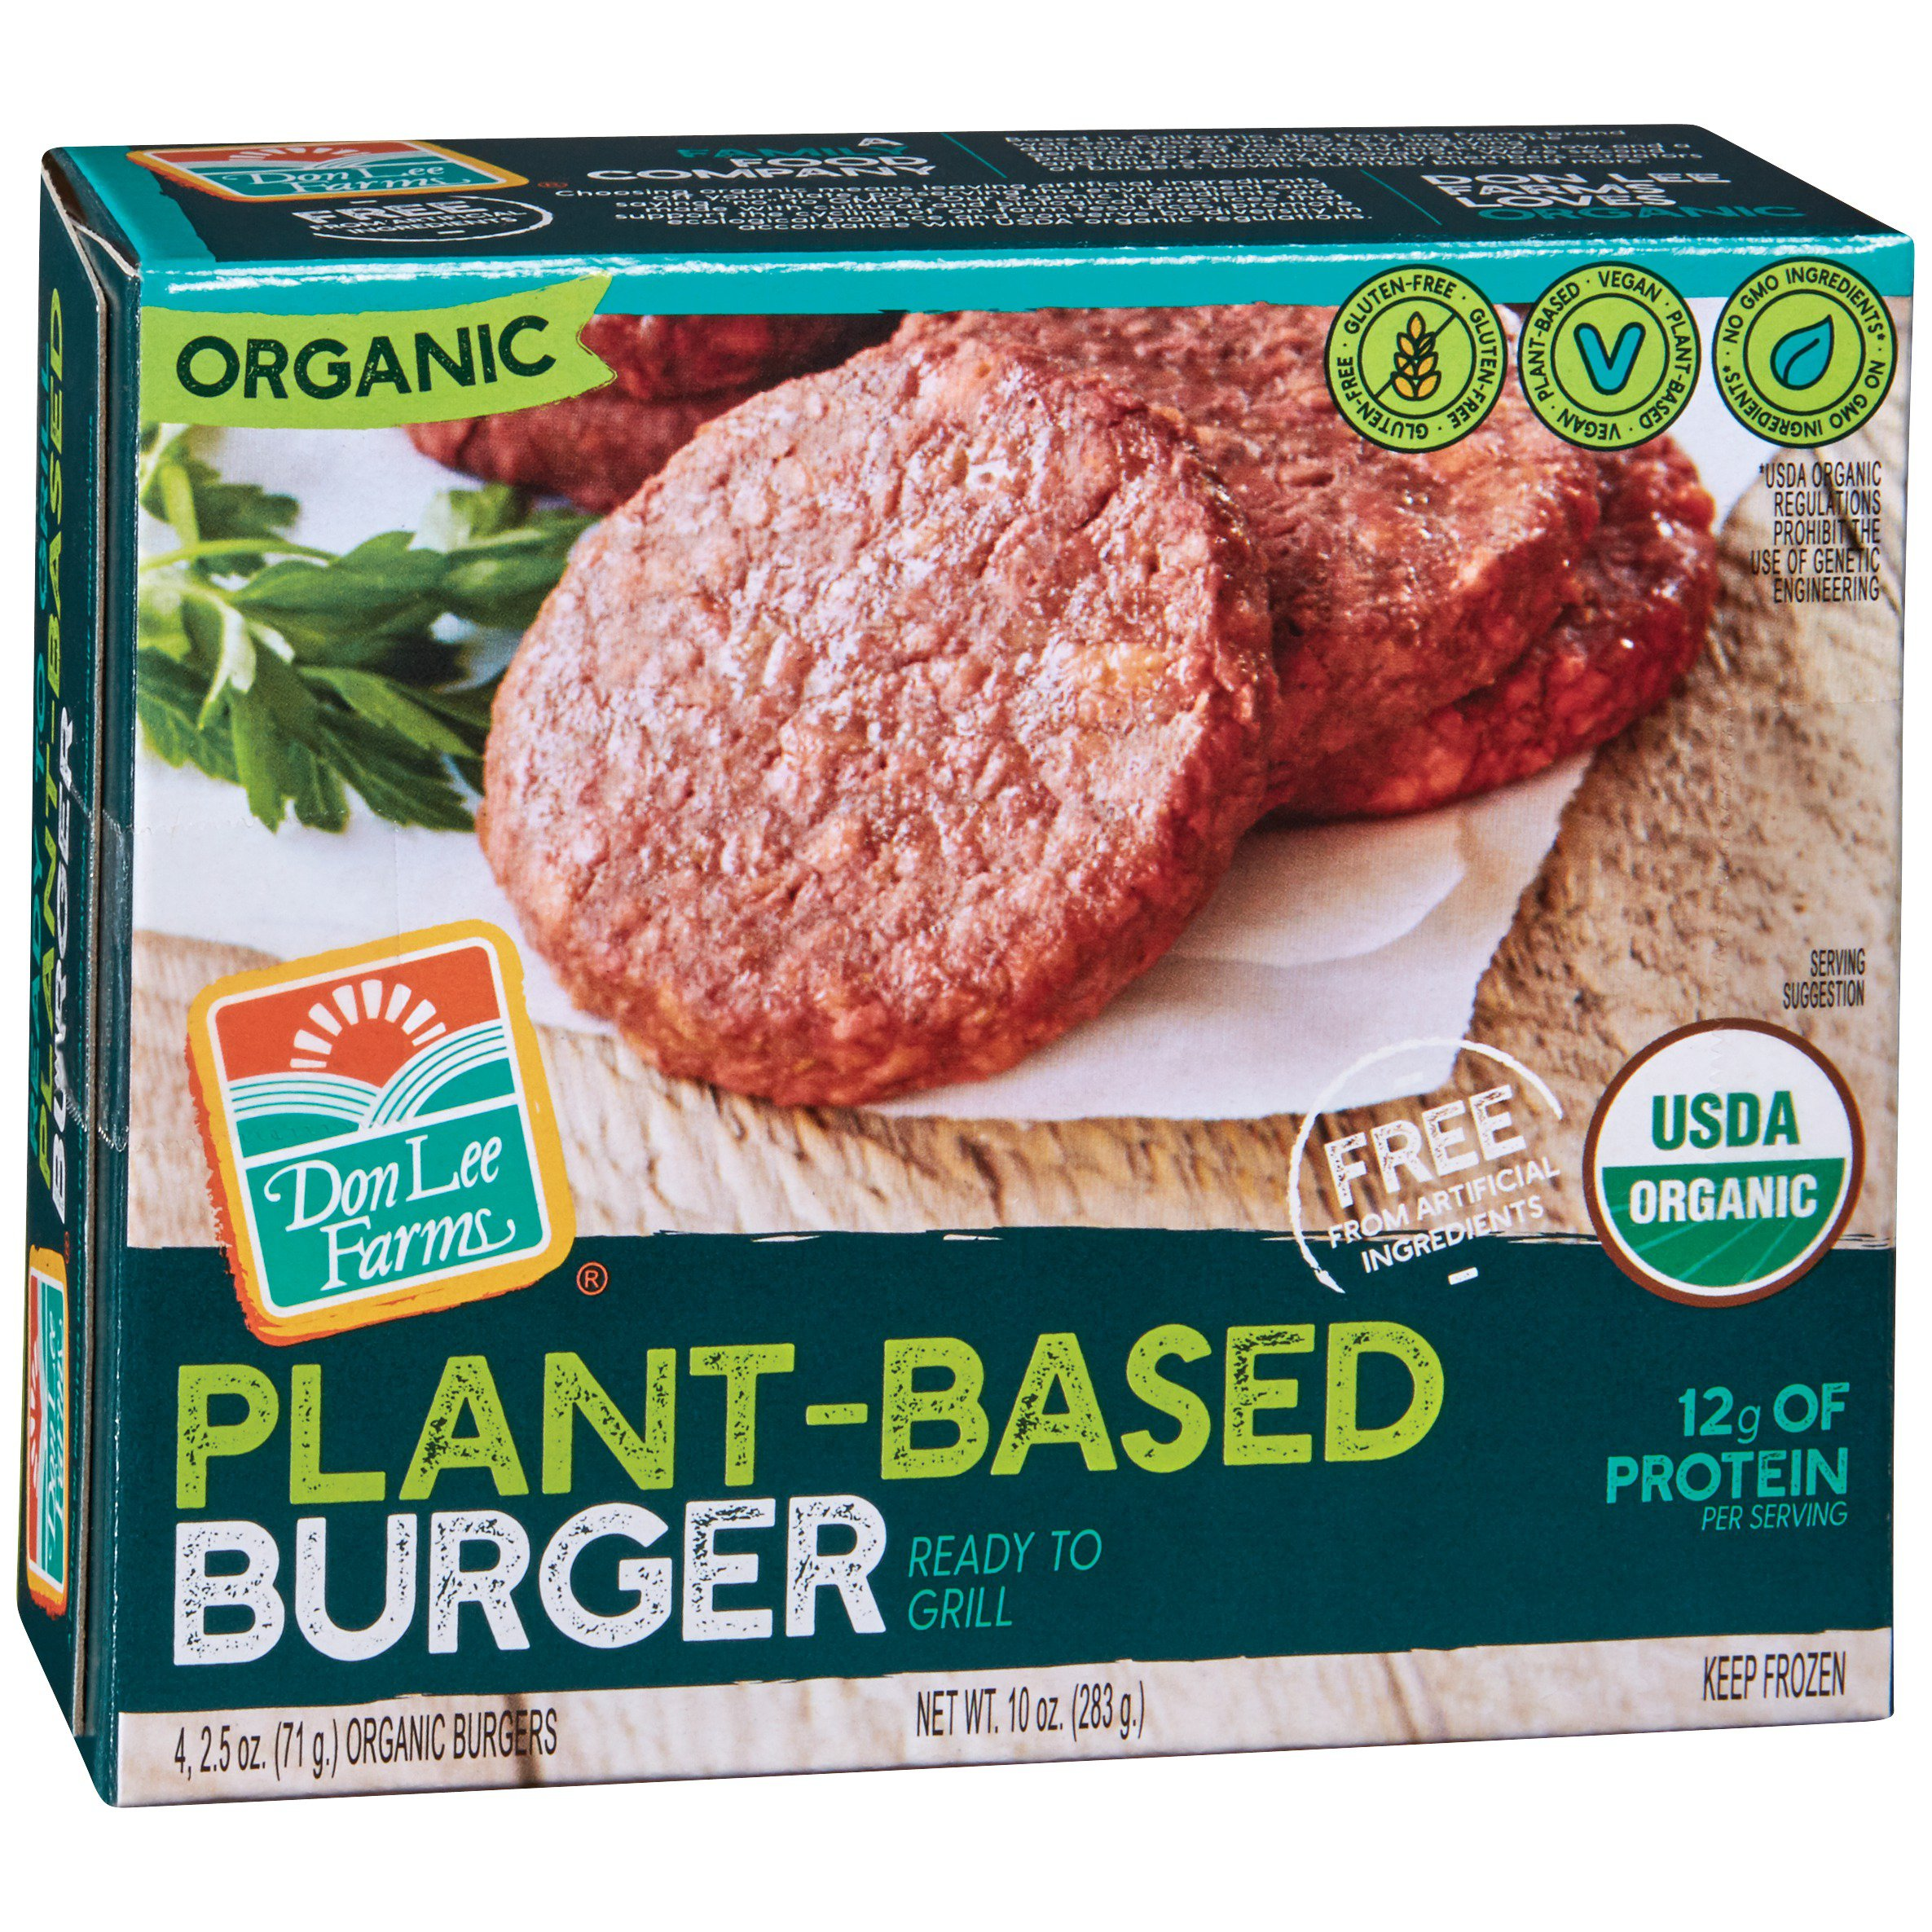 Don Lee Farms Ready To Grill Plant Based Burger Shop Meat Alternatives At H E B